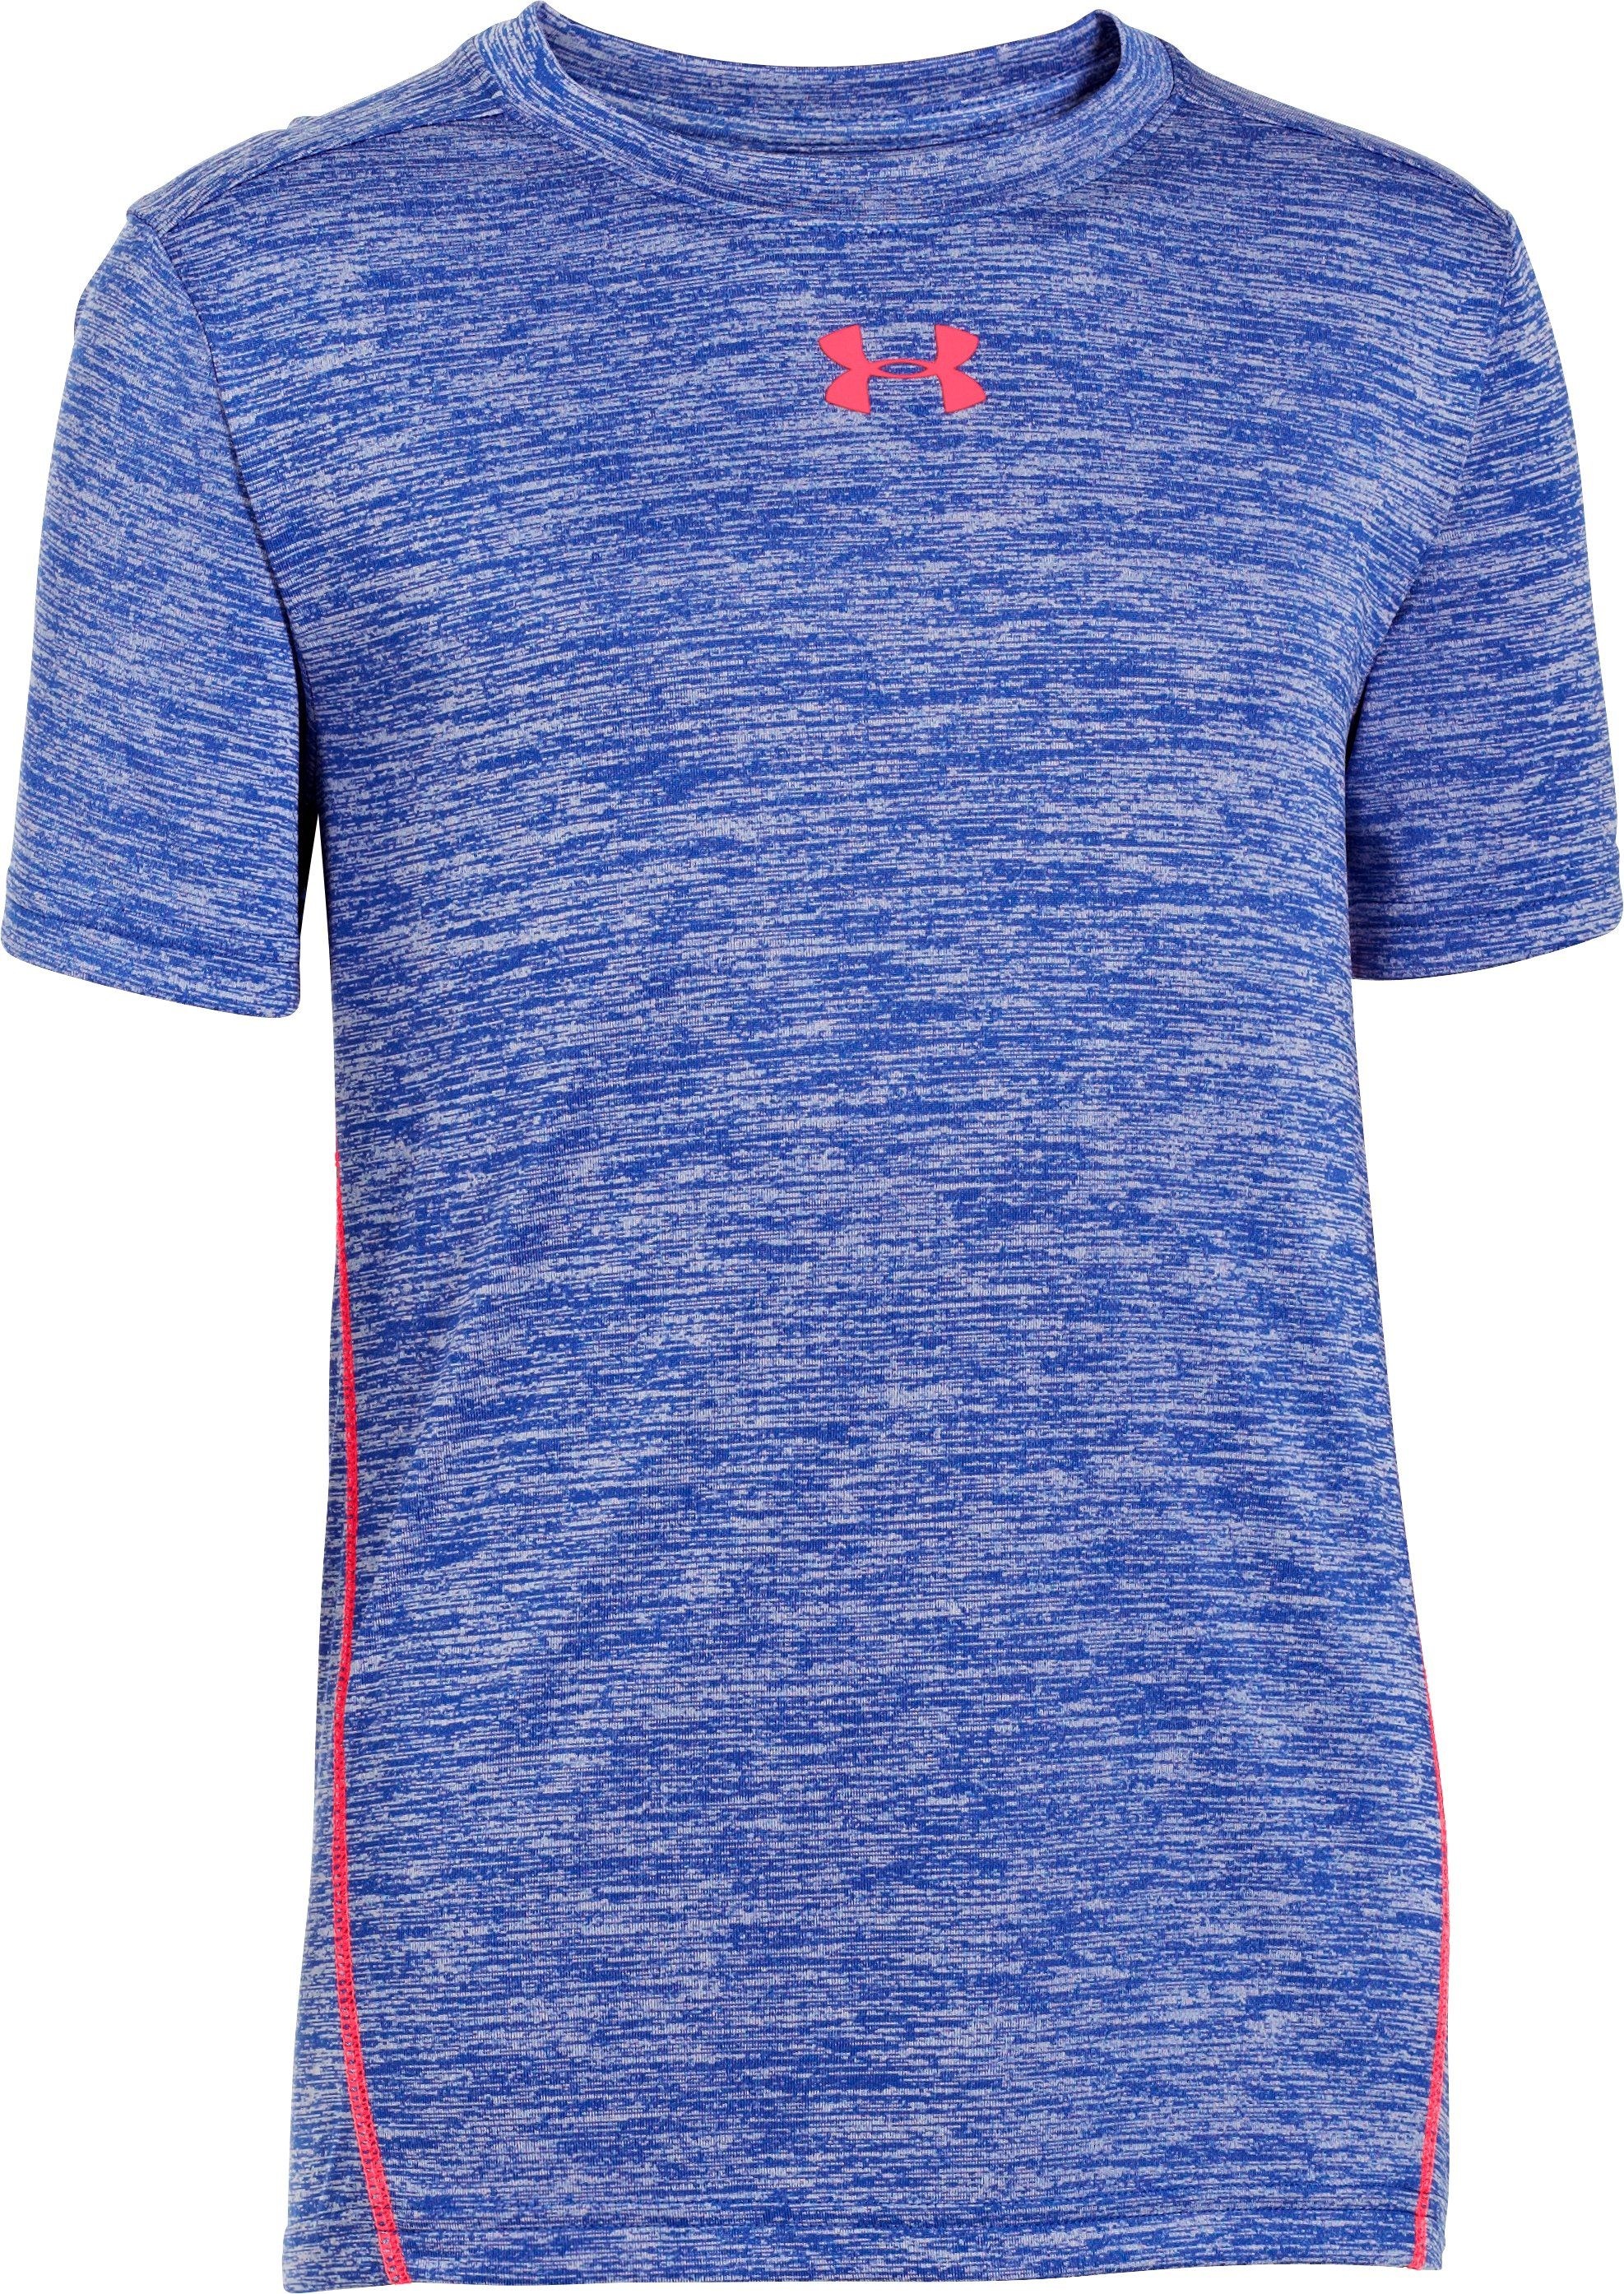 Boys' UA Tech™ Twist Short Sleeve T-Shirt, Royal, zoomed image